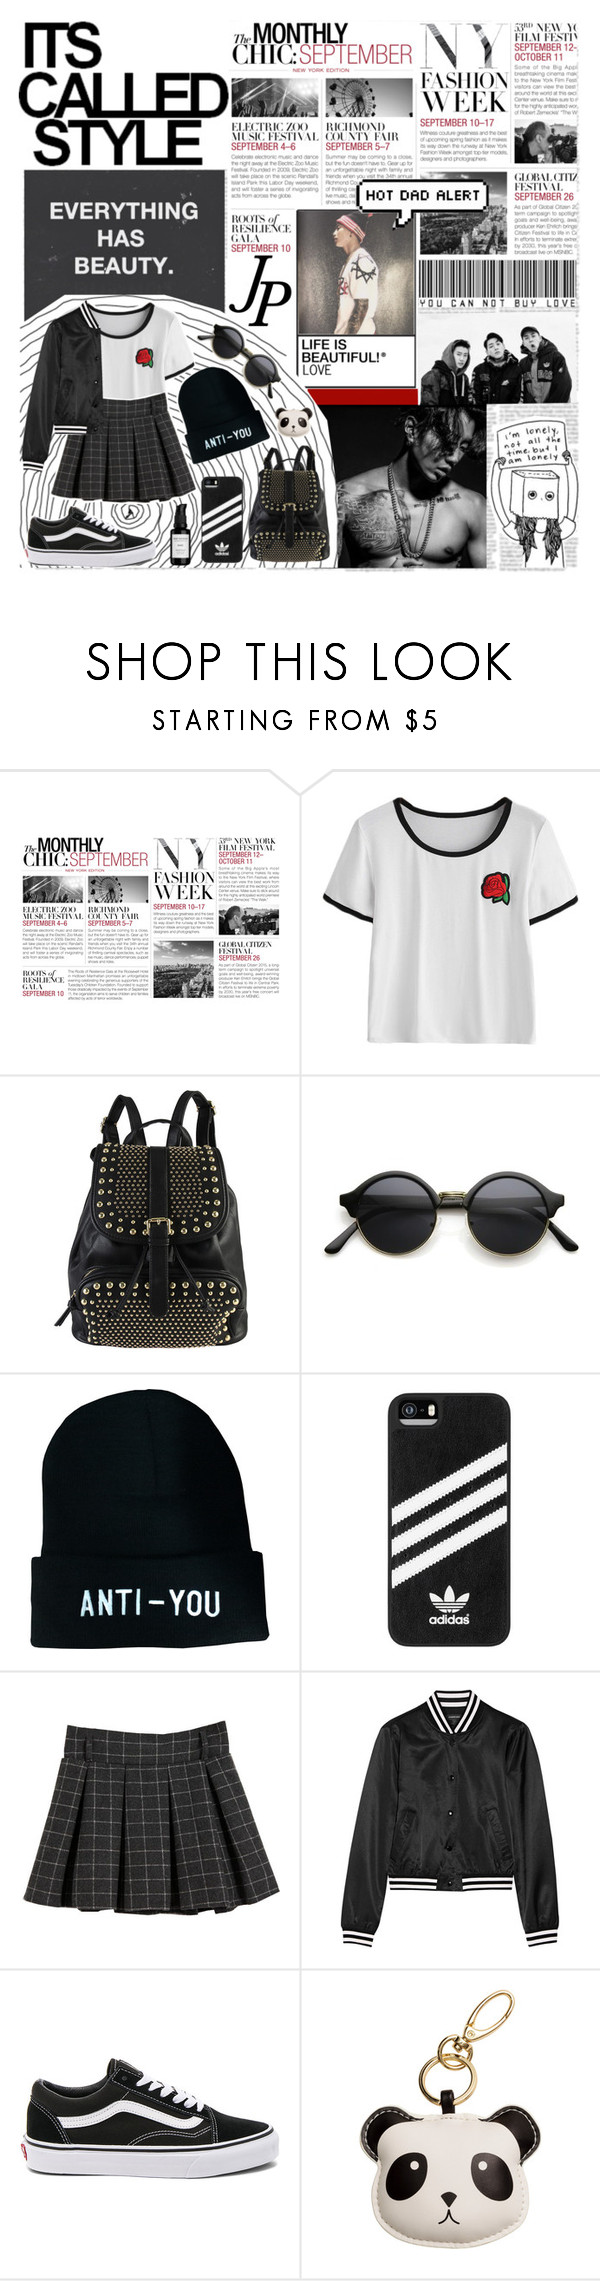 """367. J A Y  P A R K"" by choosemaknae ❤ liked on Polyvore featuring BCBGMAXAZRIA, Diophy, adidas, R13, Vans and Root Science"